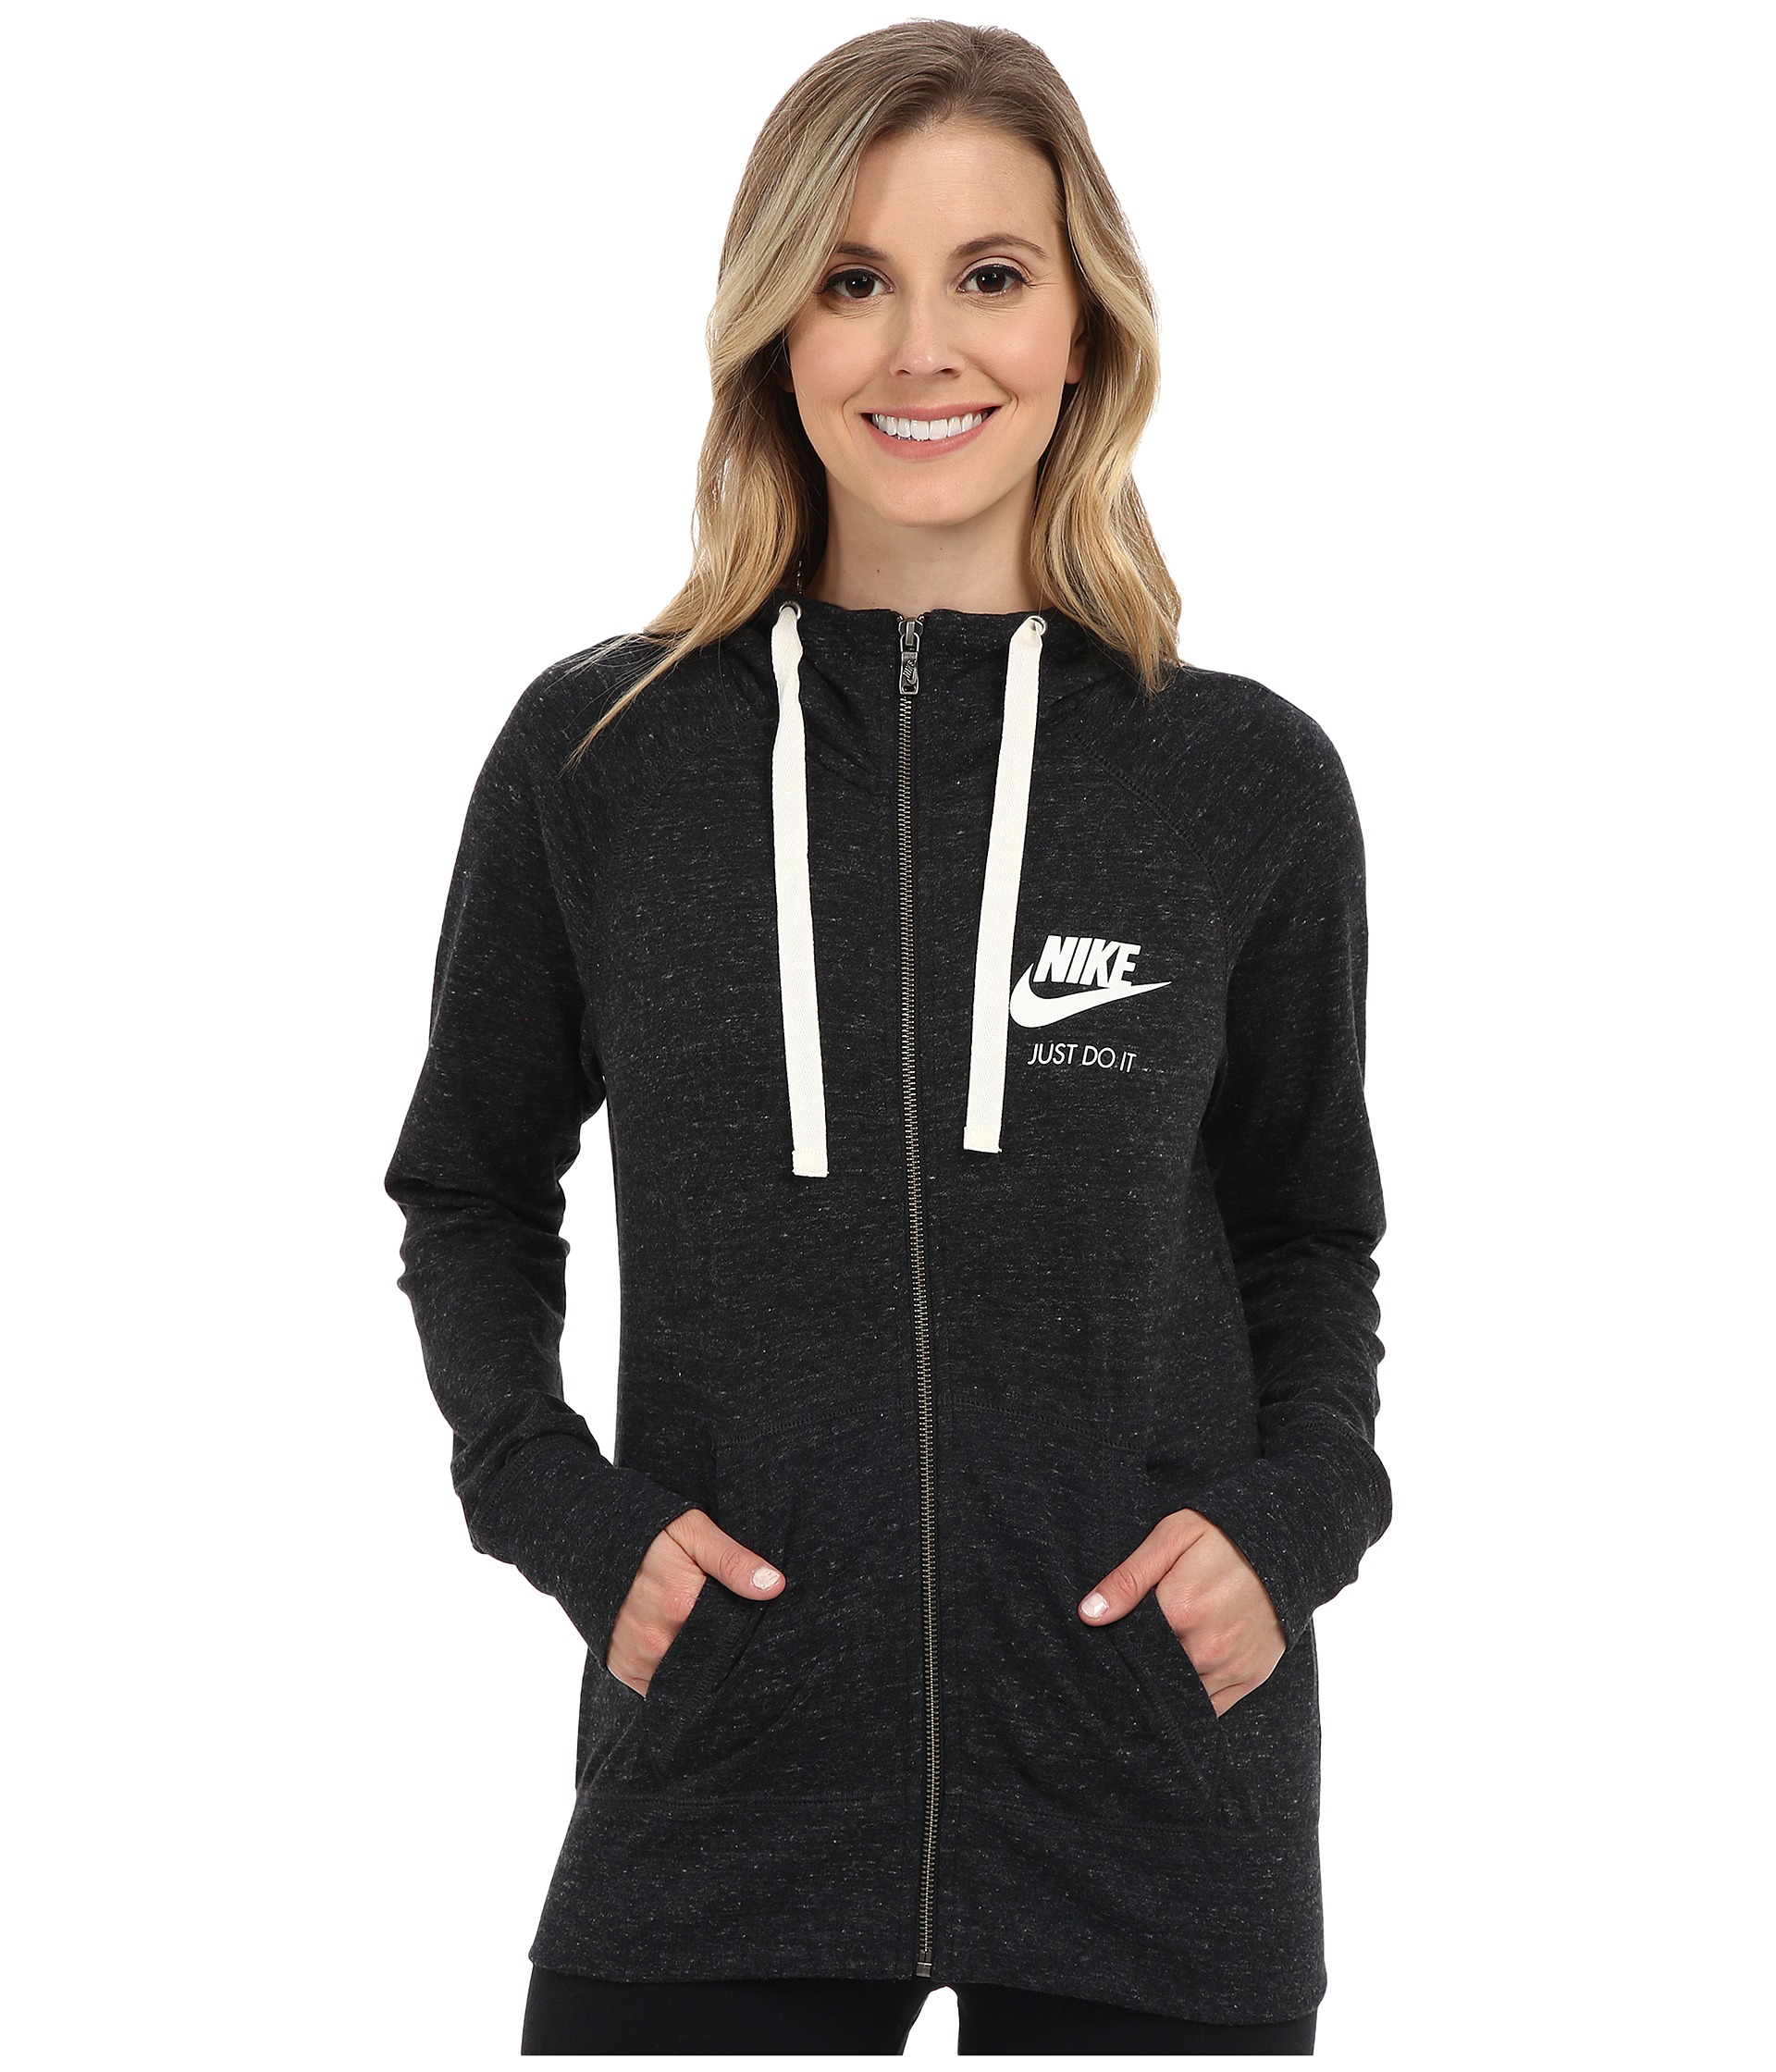 Nike Gym Vintage Full Zip Hoodie - Zappos.com Free Shipping BOTH Ways